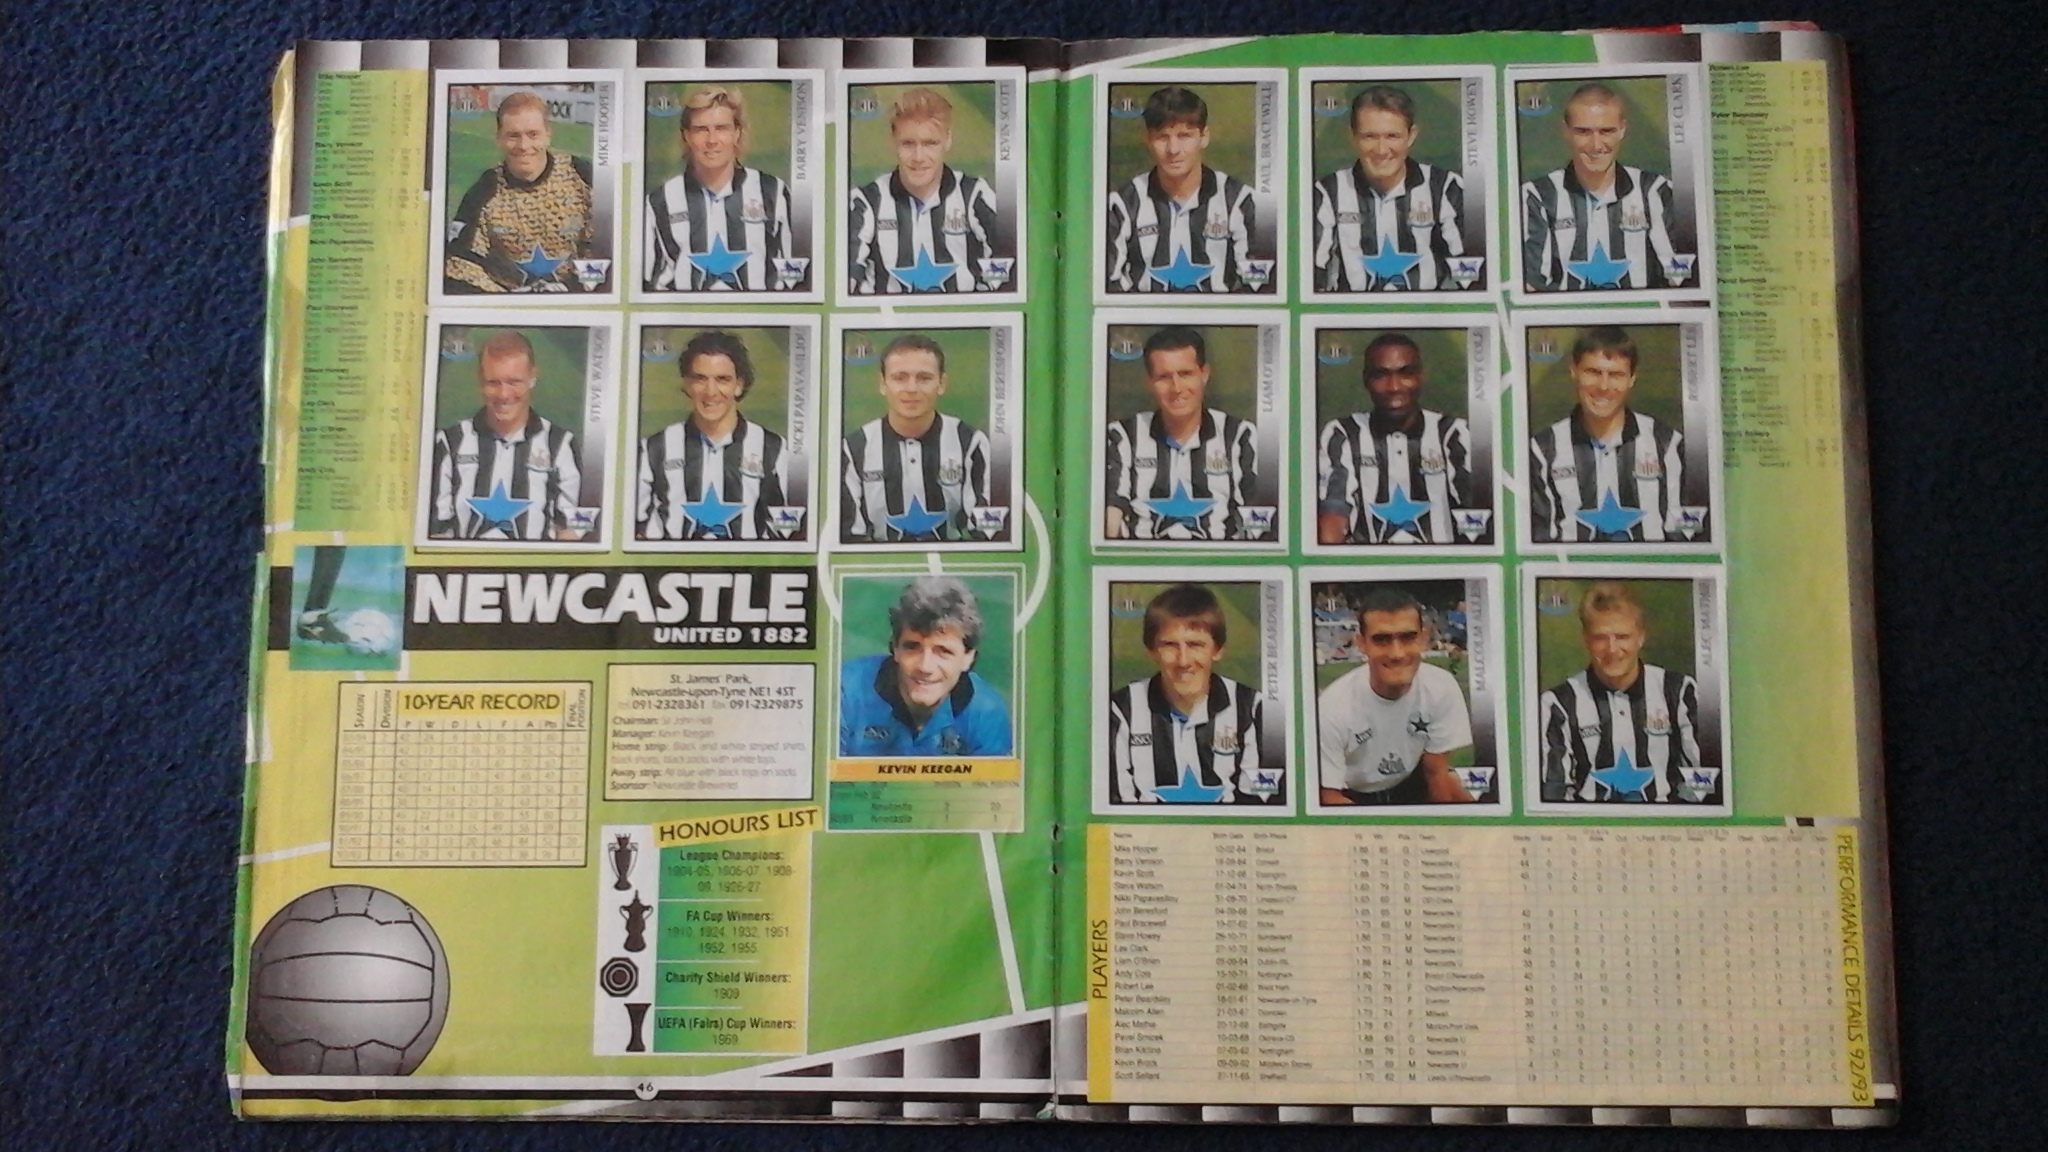 Newcastle footballers in a 1990s Premier League sticker book